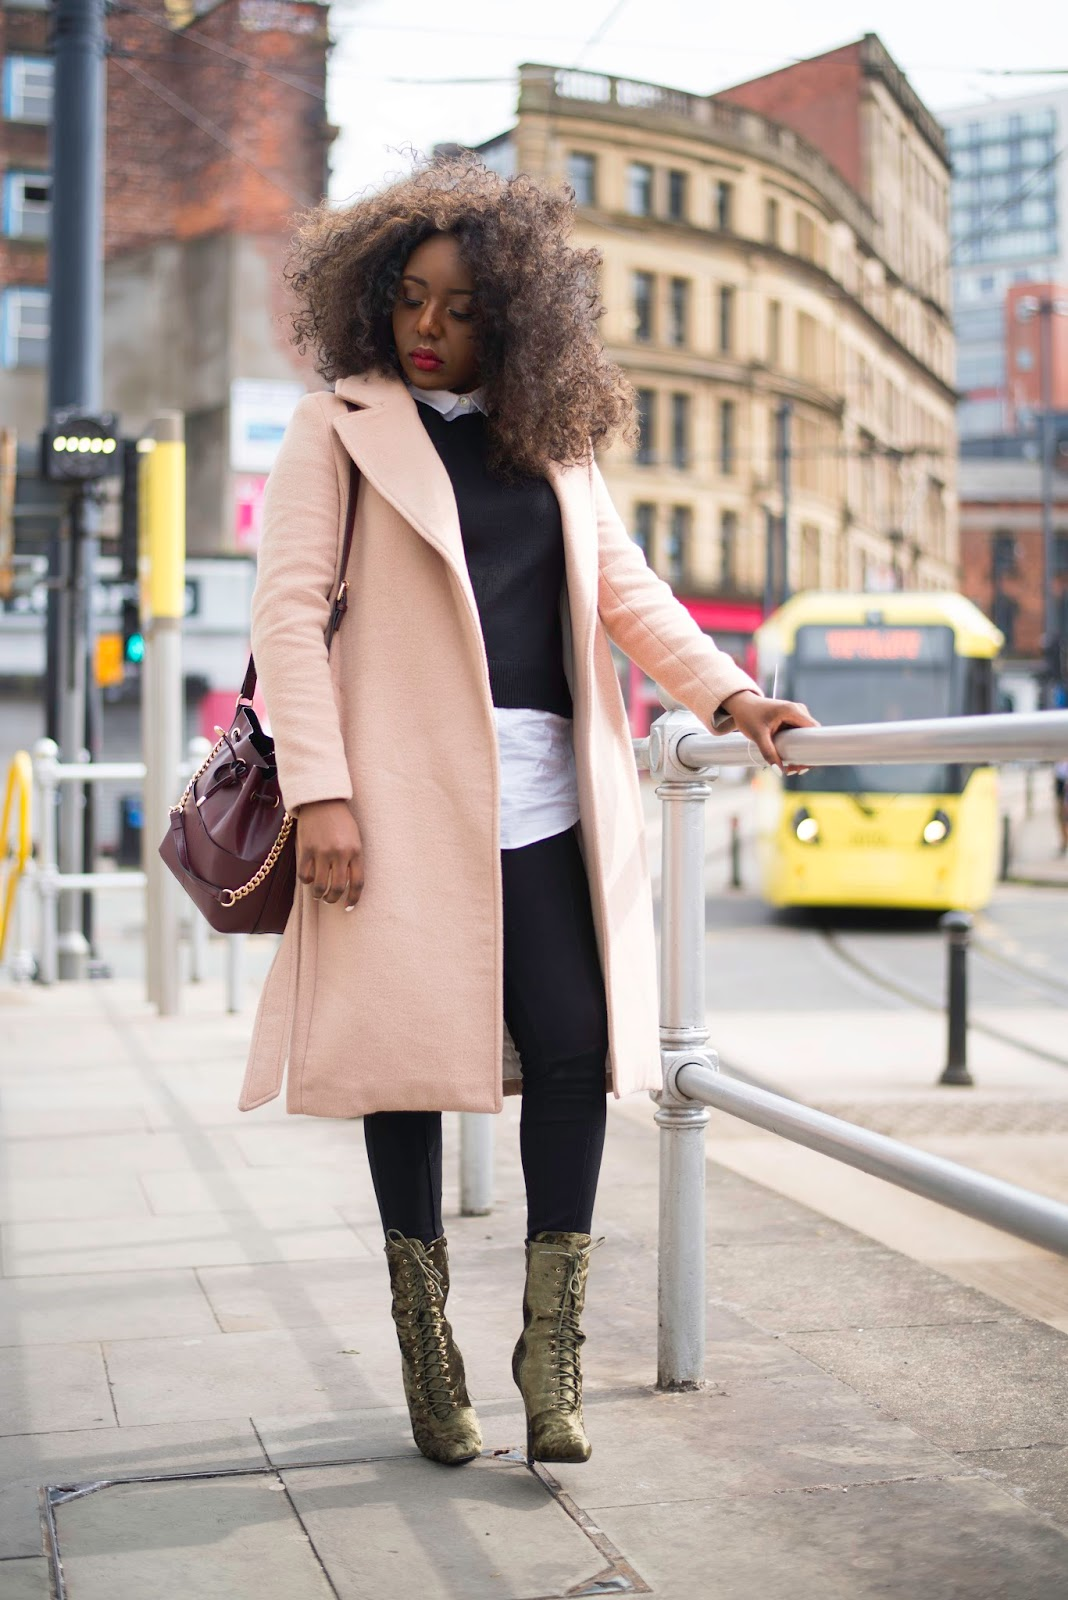 STEPHYLATELY | Elevate a preppy look with an elegant outerwear, the camel coat